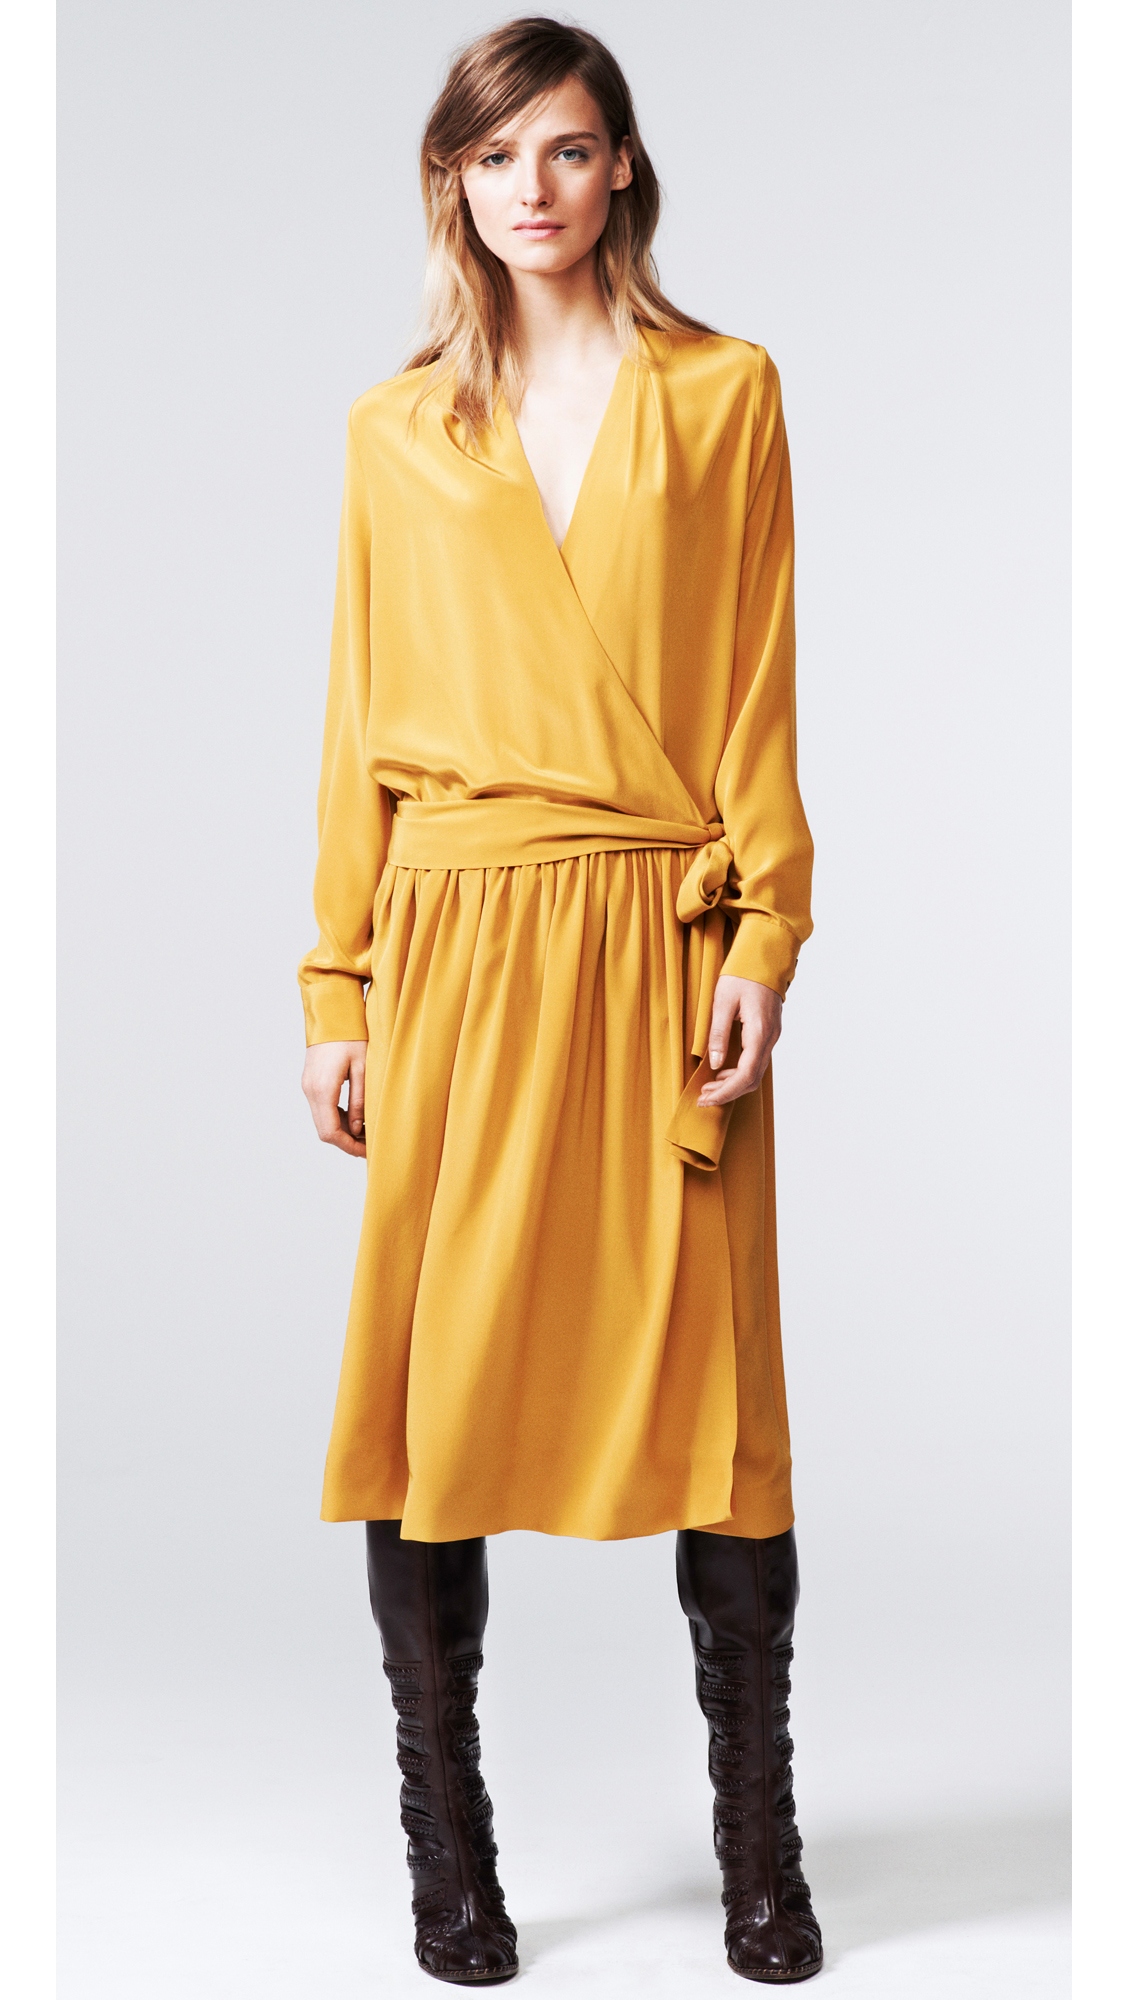 Thakoon addition Long Sleeve Wrap Dress in Yellow - Lyst